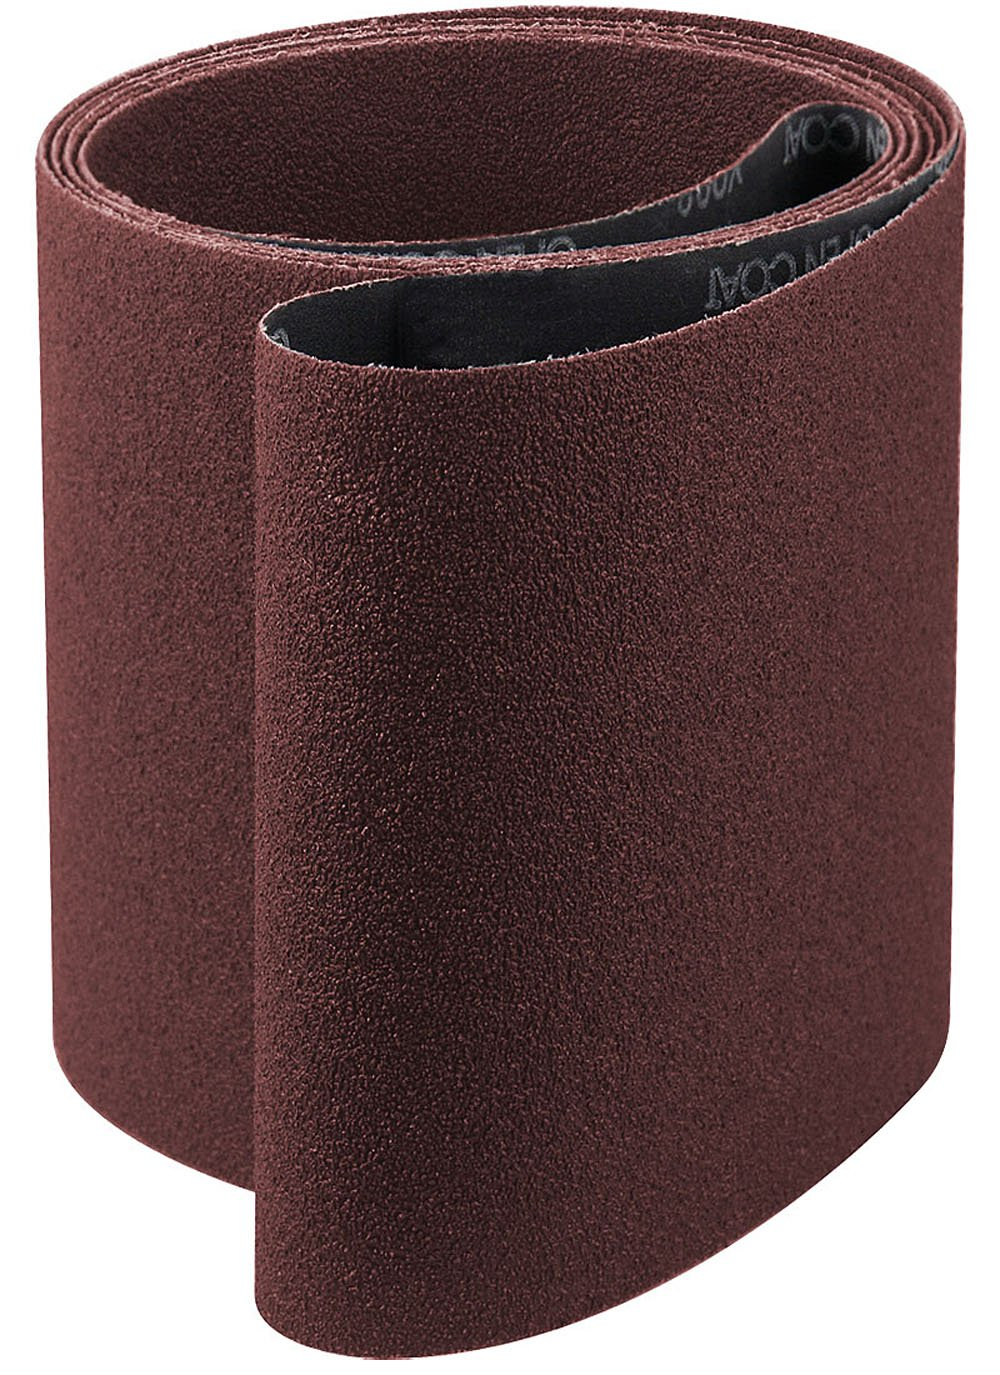 A&H Abrasives™ 6' X 158' Aluminum Oxide Resin-Bond Open-Coat Sander Belts, (x-Weight) Cloth Backing